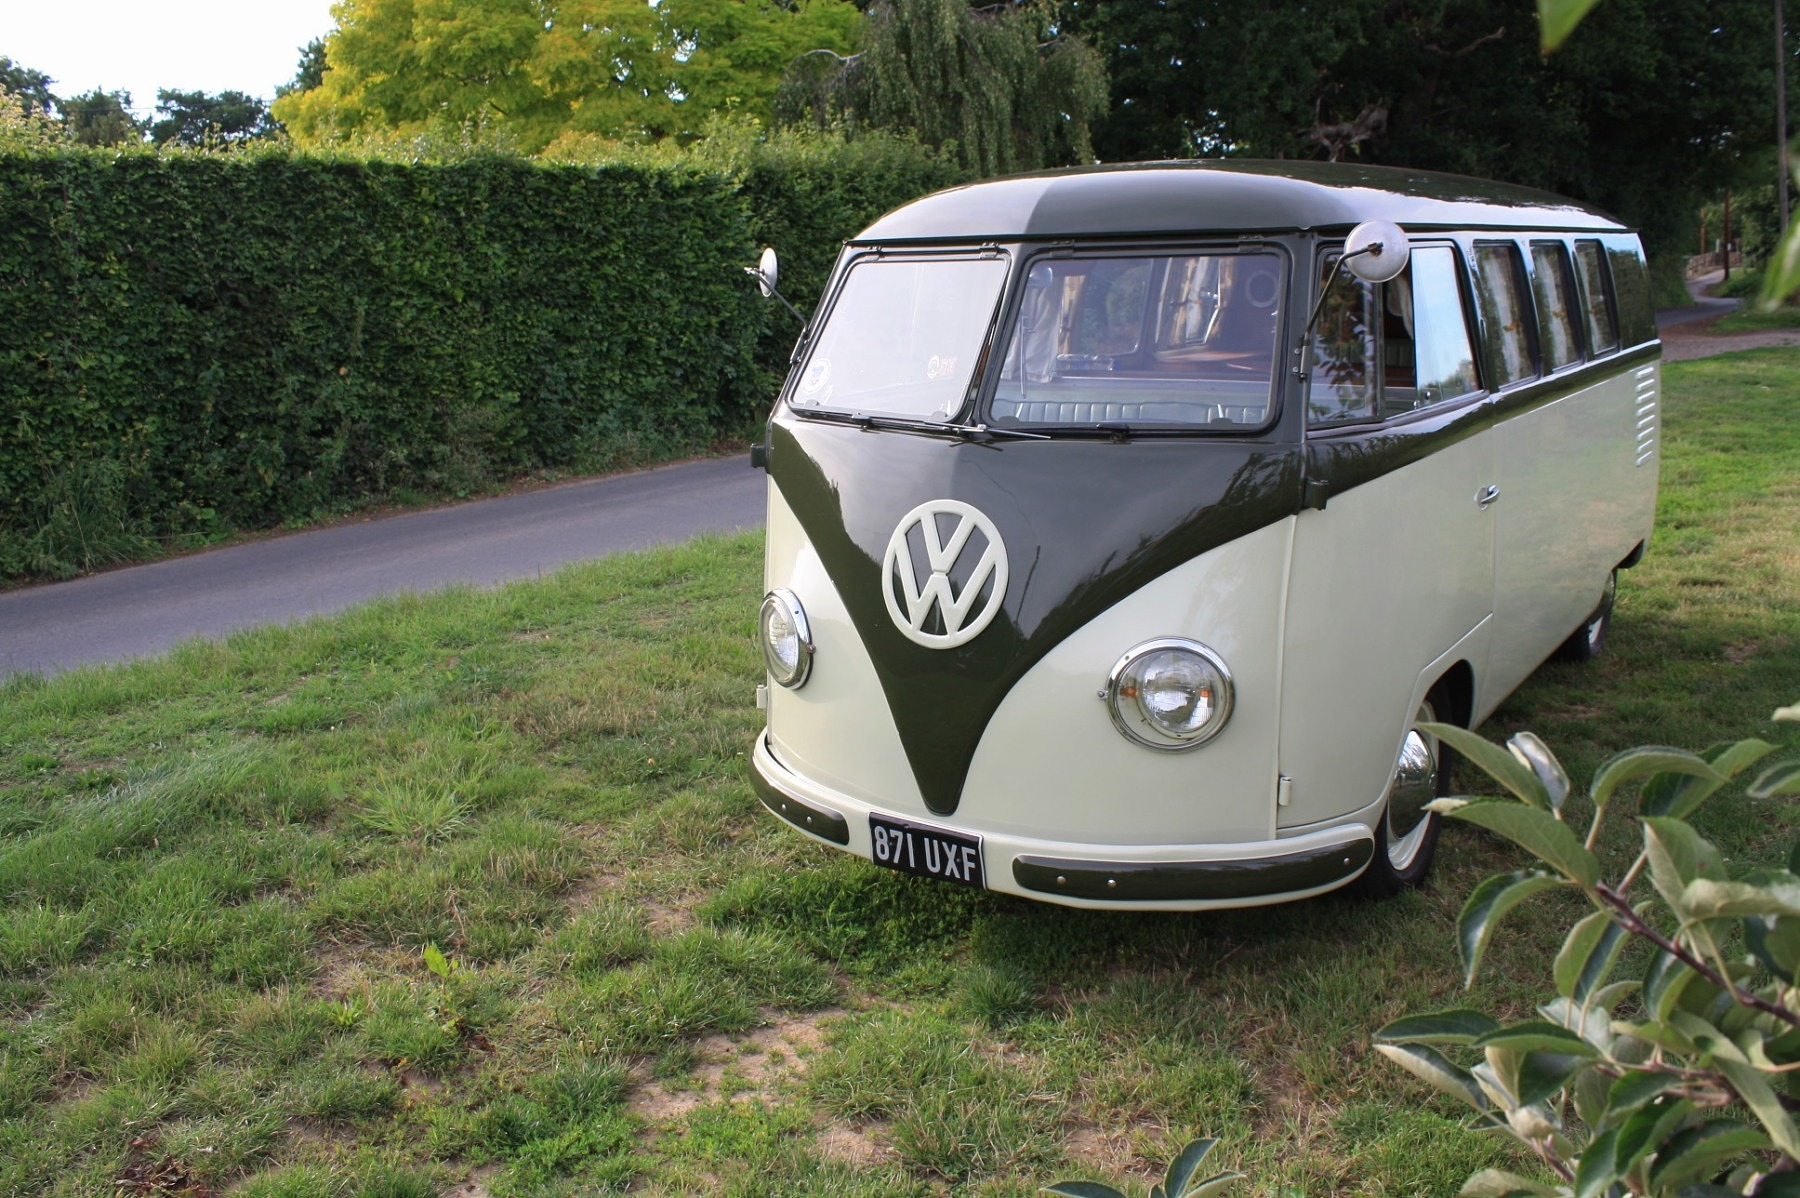 1951 Volkswagen Split Screen 'Barn Door' 23 A Kombi - One ...